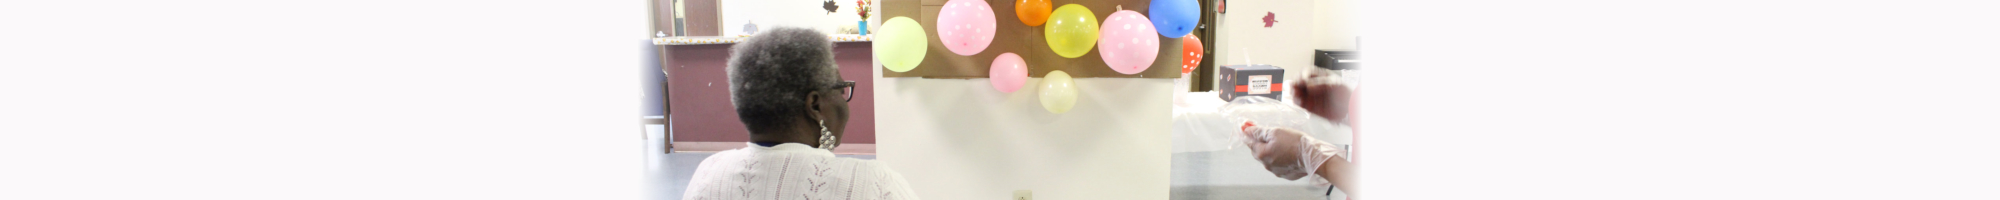 Old Man sitting with the balloons in his front